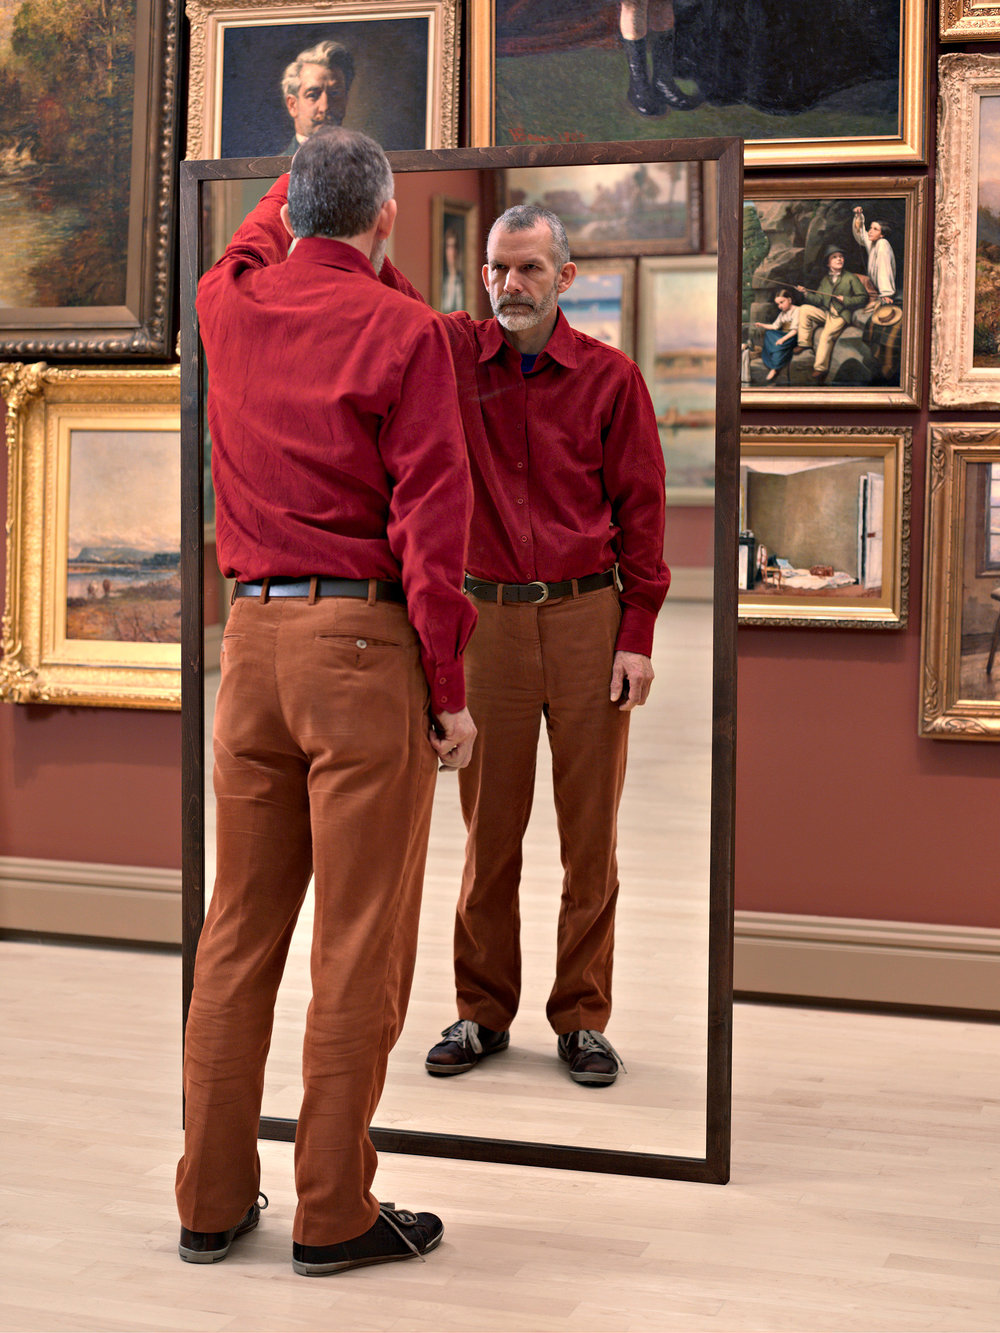 A Man Mirroring II  2008, colour photograph 101 x 76 cm / 40 x 30 in. Edition of 7